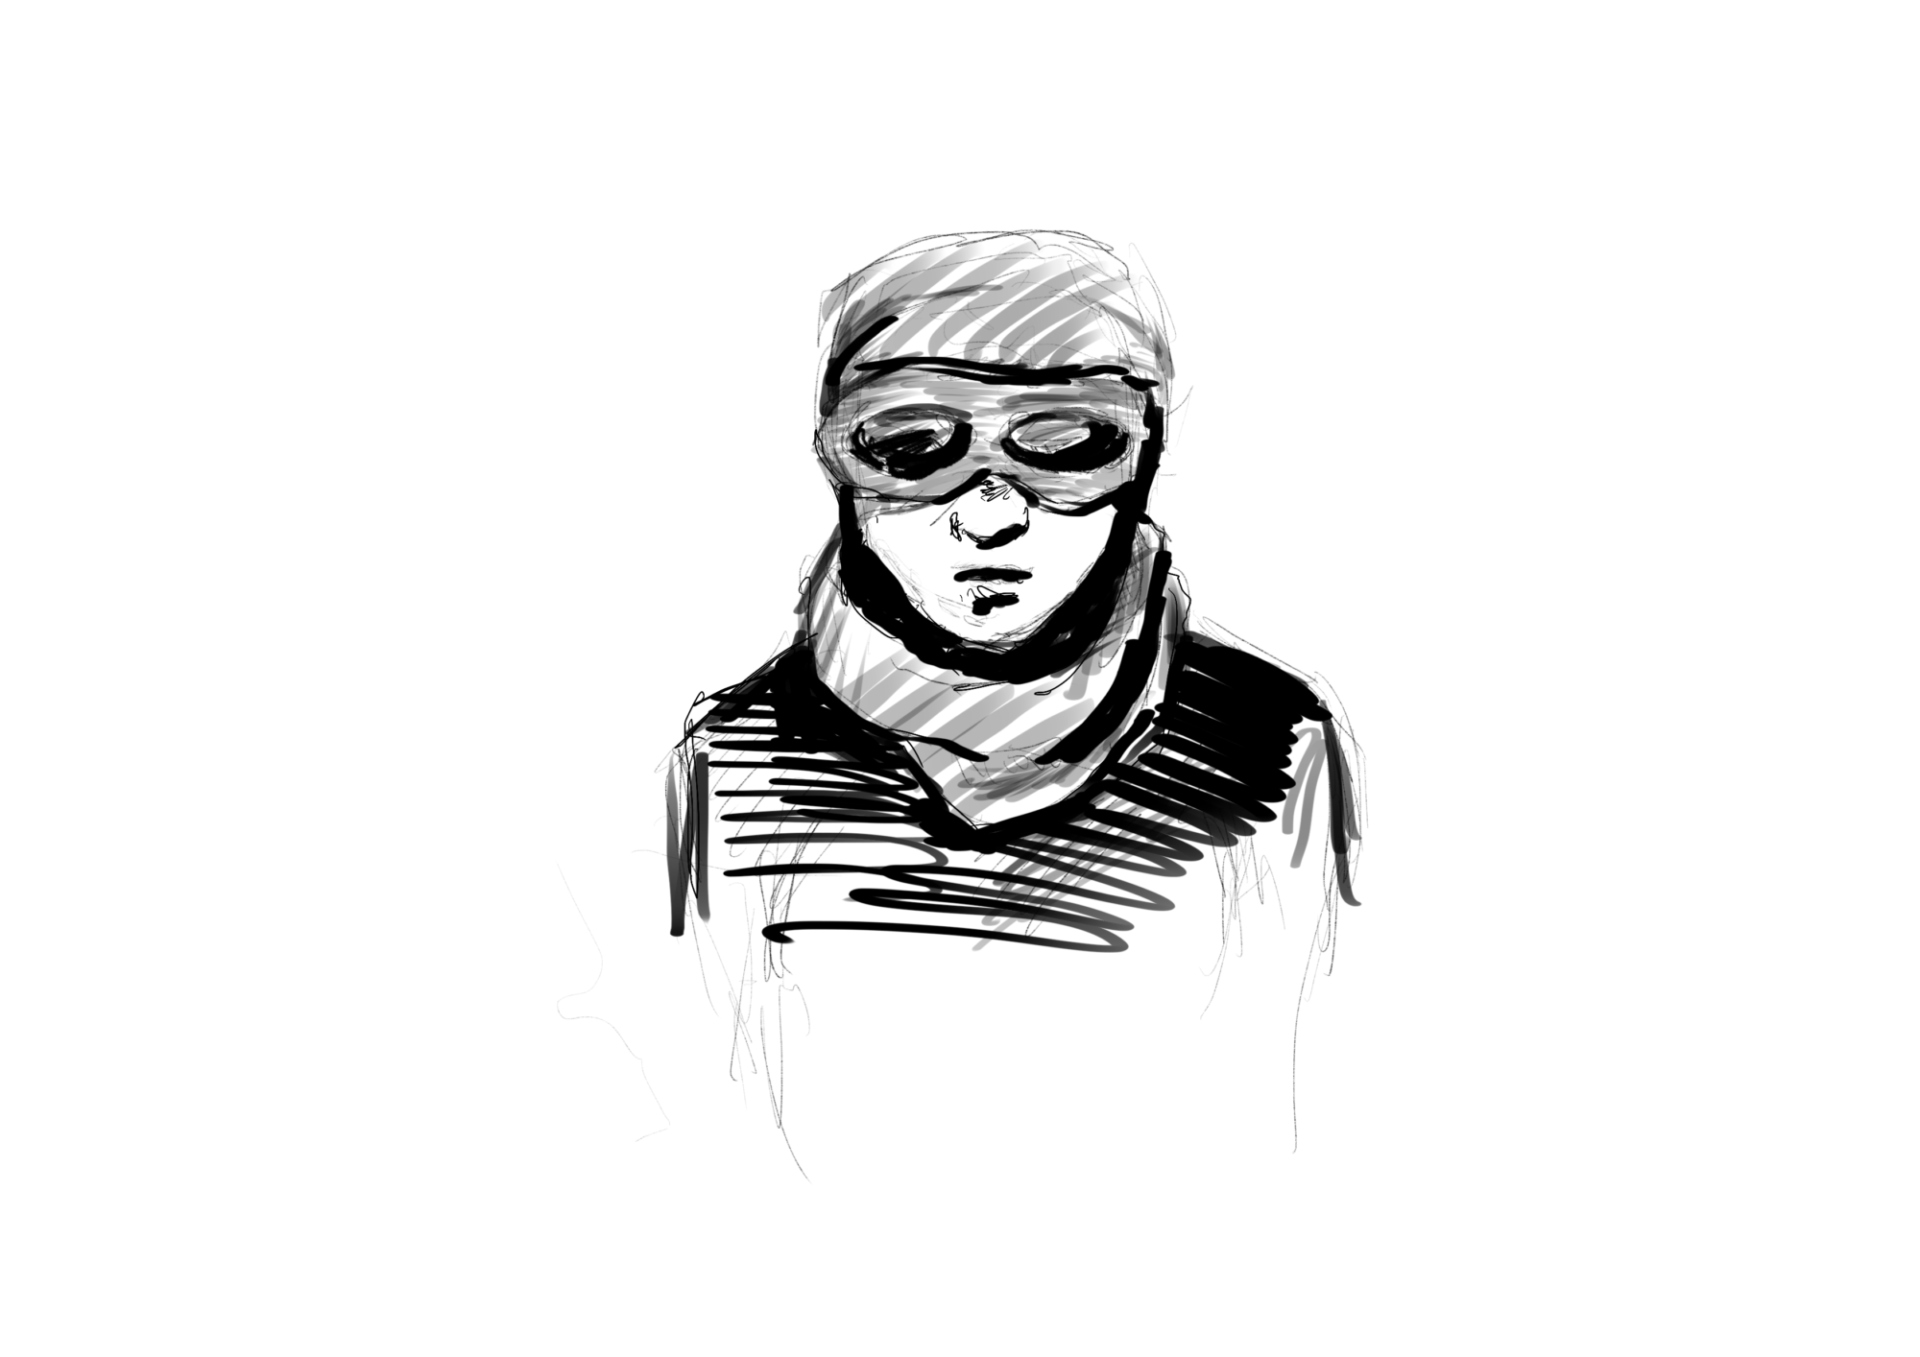 Daily-Sketch-2016-02-06.png?mtime=201602